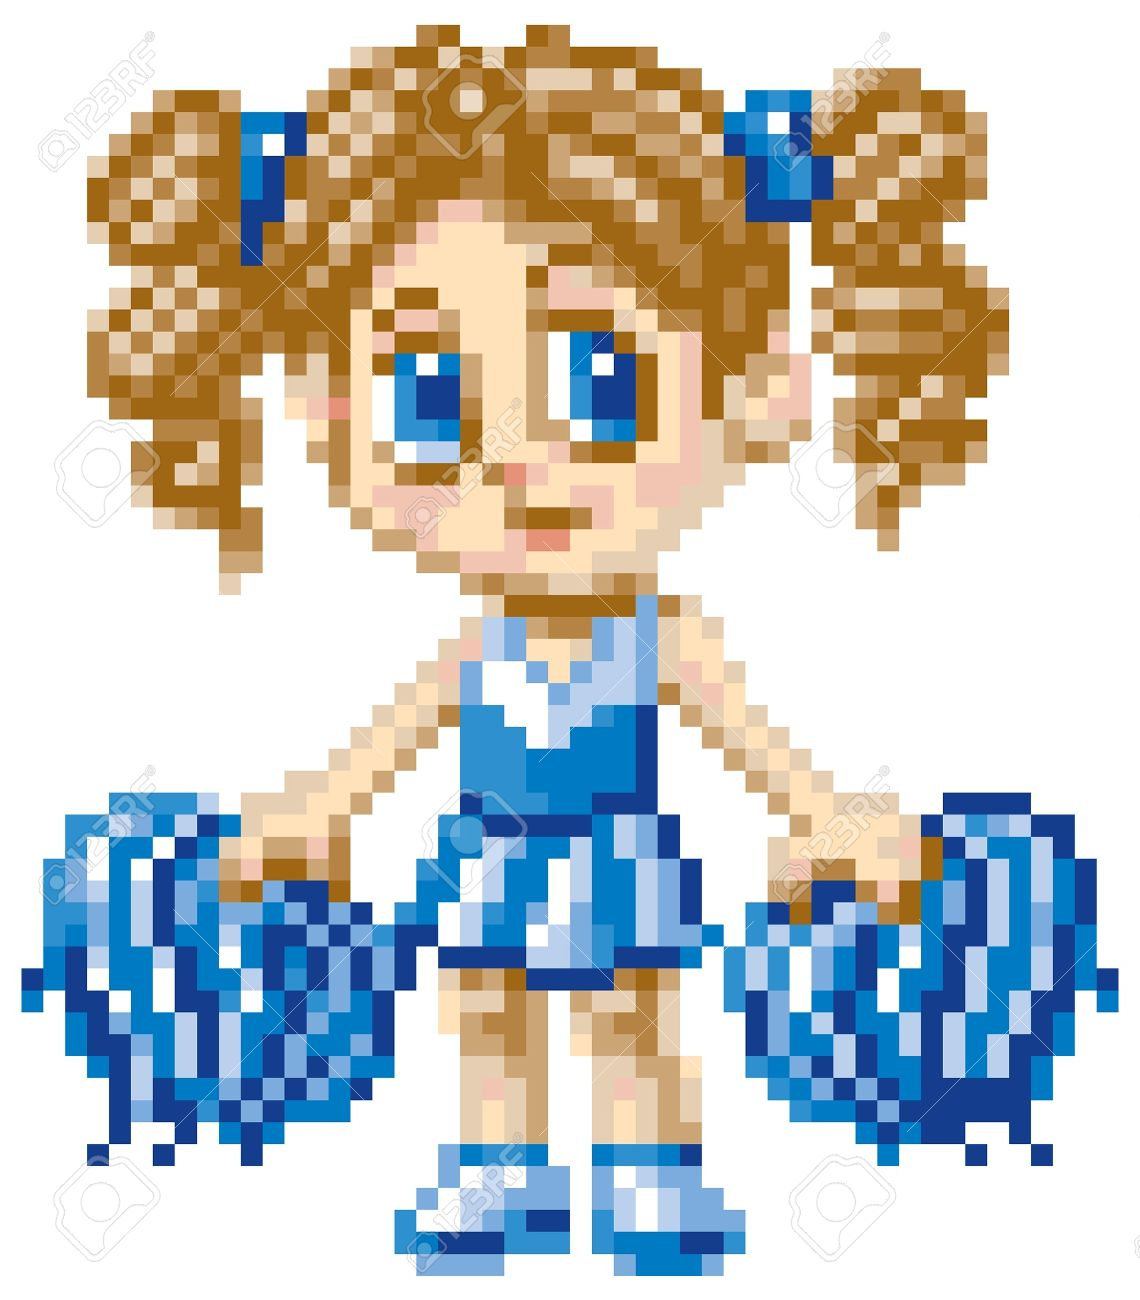 A Cheerleader Girl Illustrated In An Anime Or Manga Style, Rendered.. intérieur Pixel Art Facile Fille